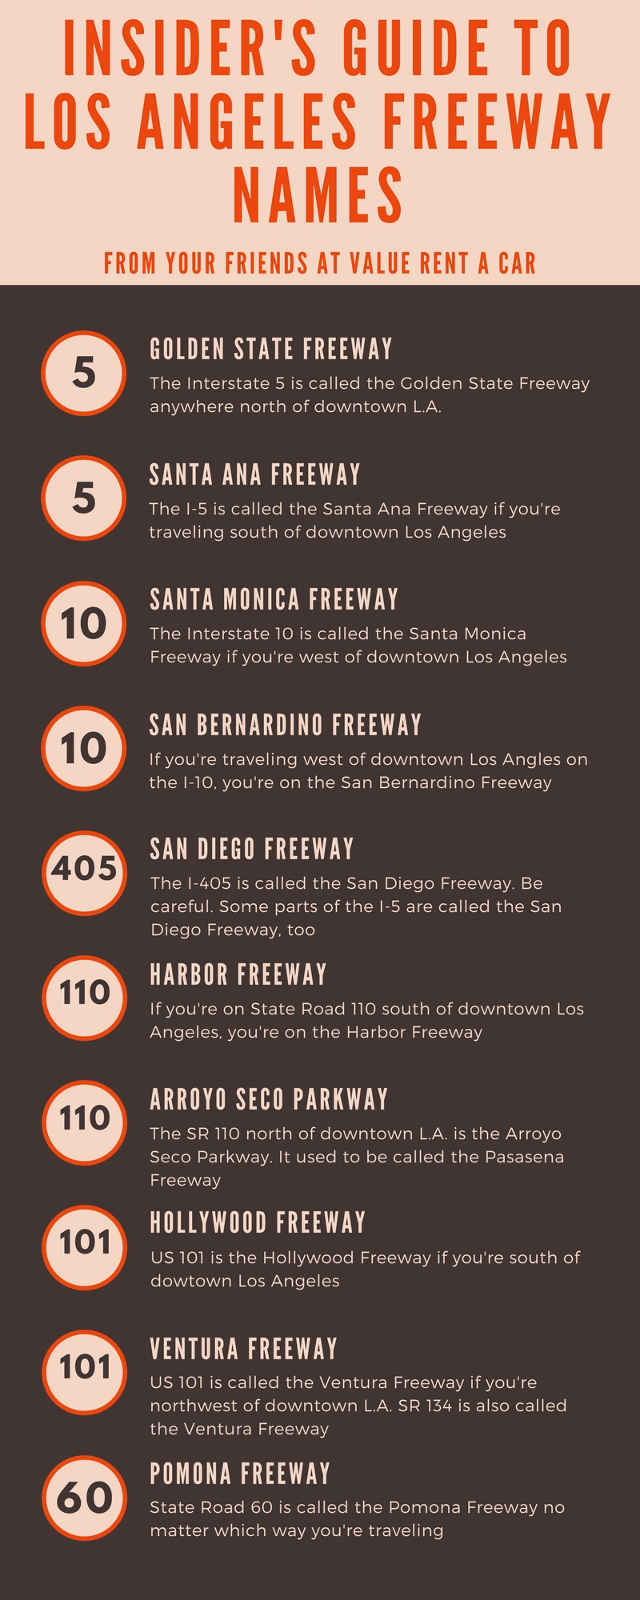 Insider's Guide To Los Angeles Freeway Names from rentavaluecar.com